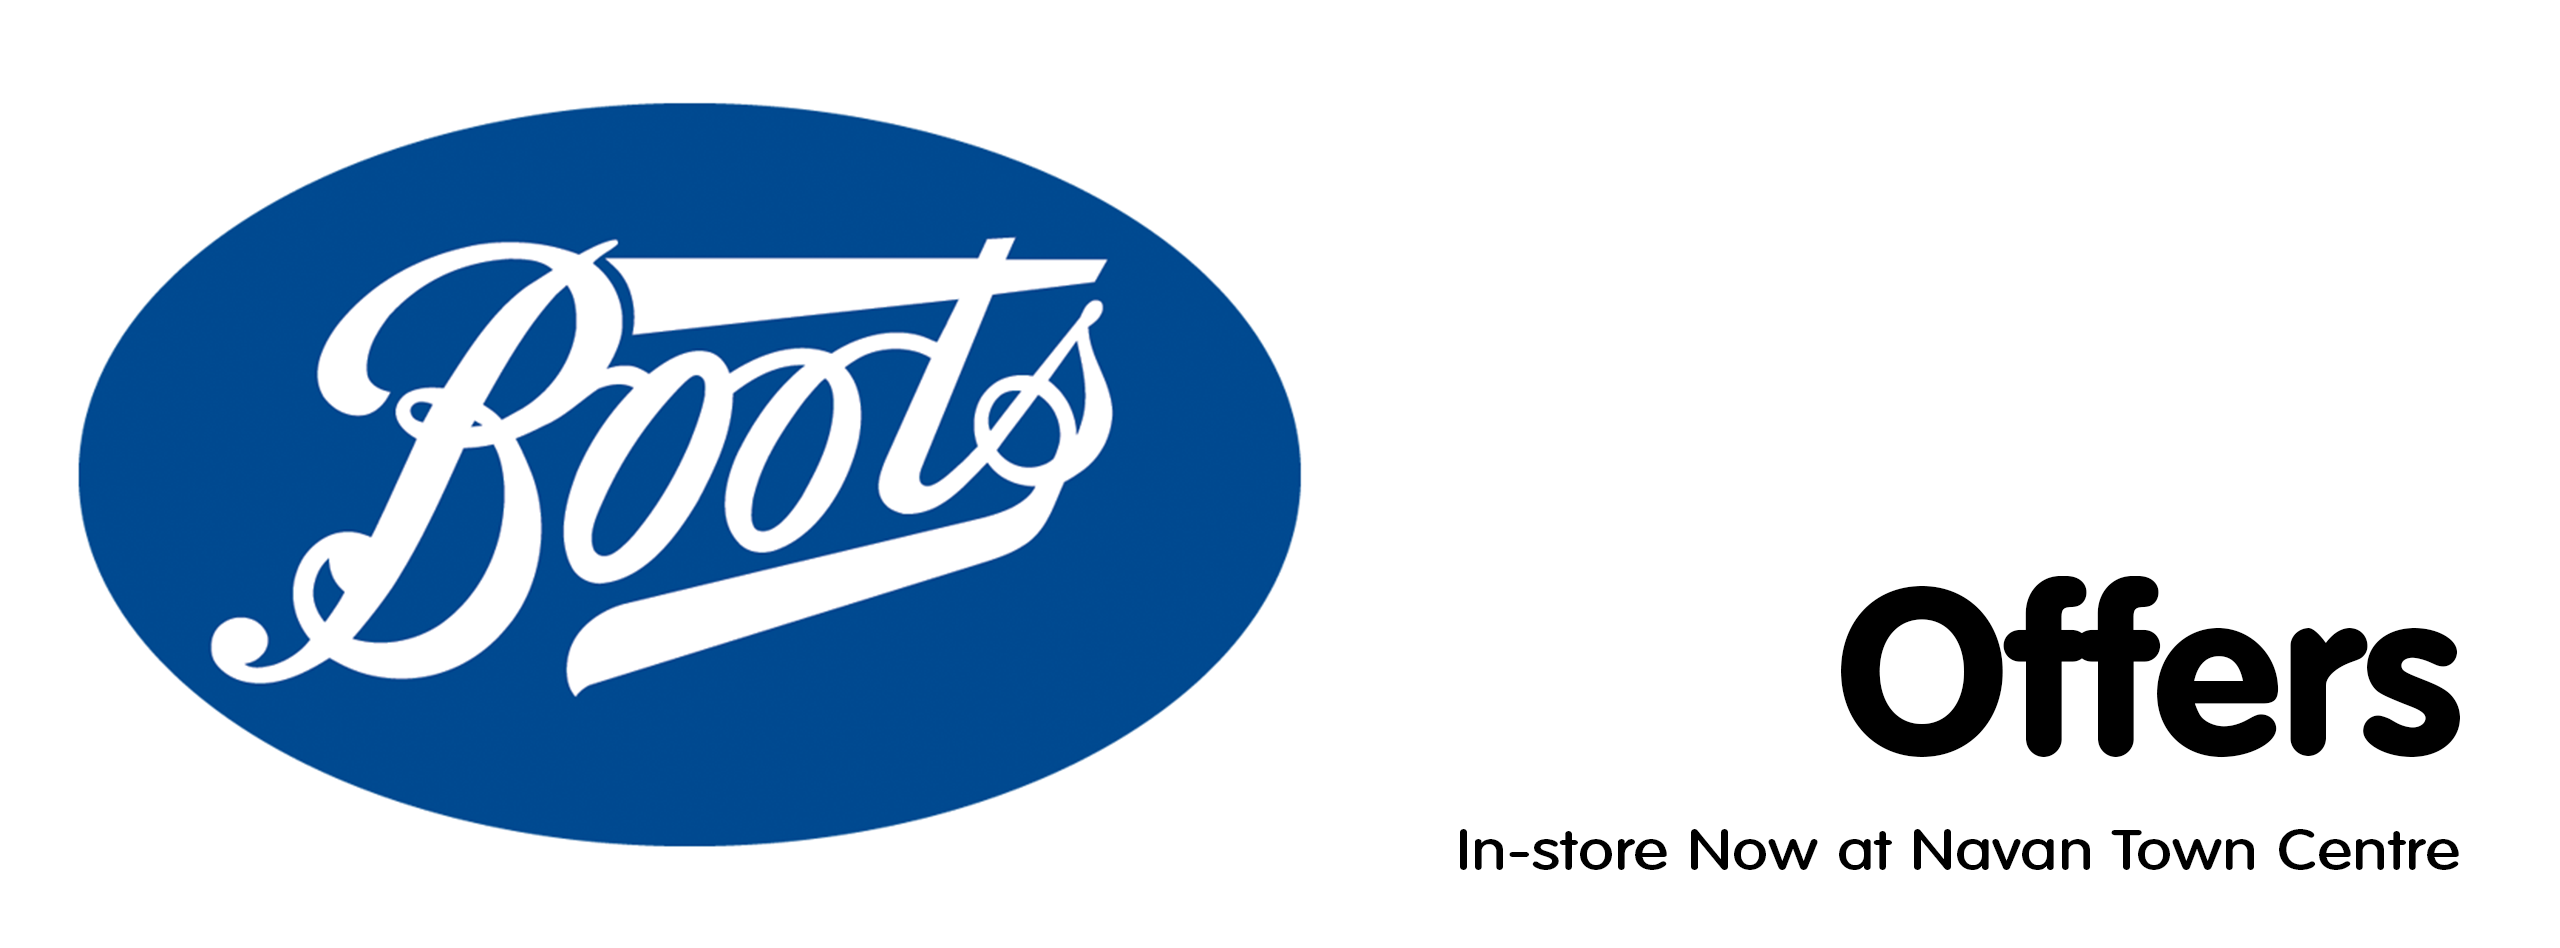 This weeks offers at Boots. In-store now at Navan Town Centre